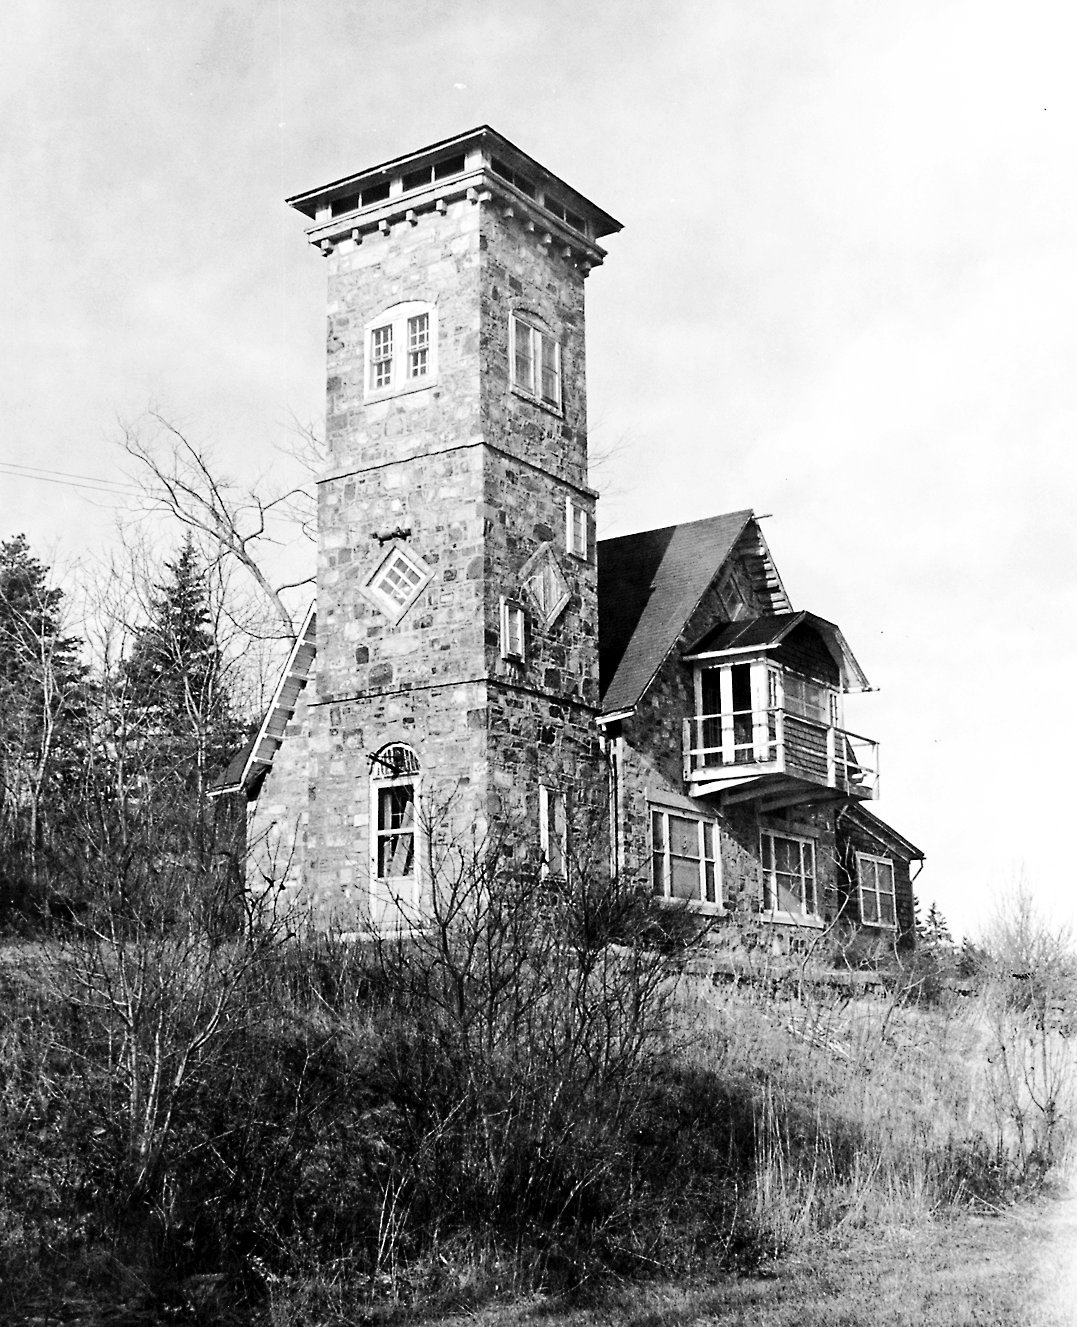 This is a 1975 photo of the property known as Beckett's Castle. It was built in 1871 by Sylvester Be